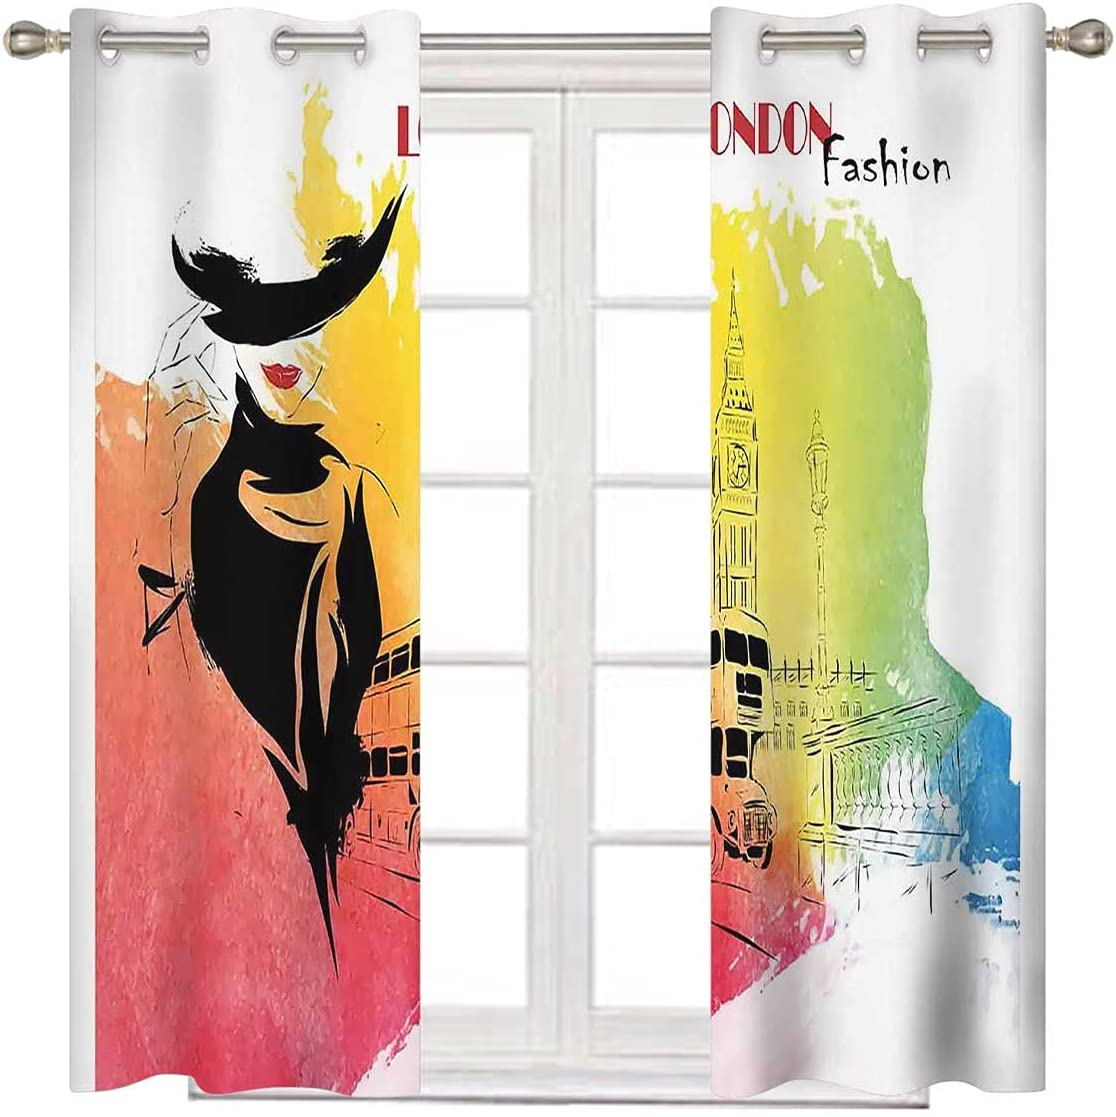 Patio Curtains for Sliding Door Memphis Mall 63 Inches Translated L Long London Fashion